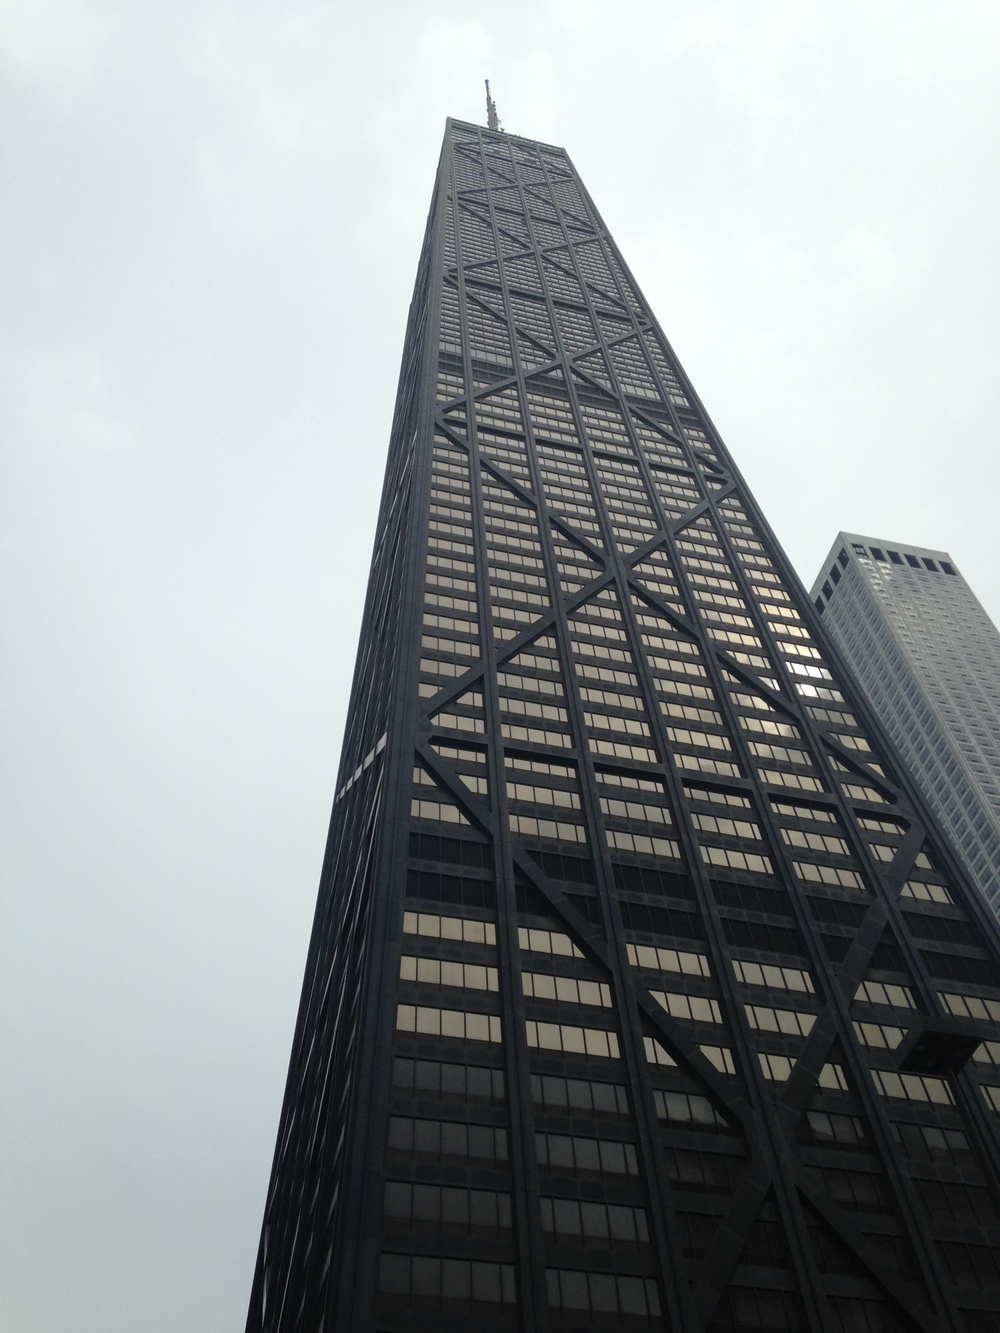 Hancock tower from below